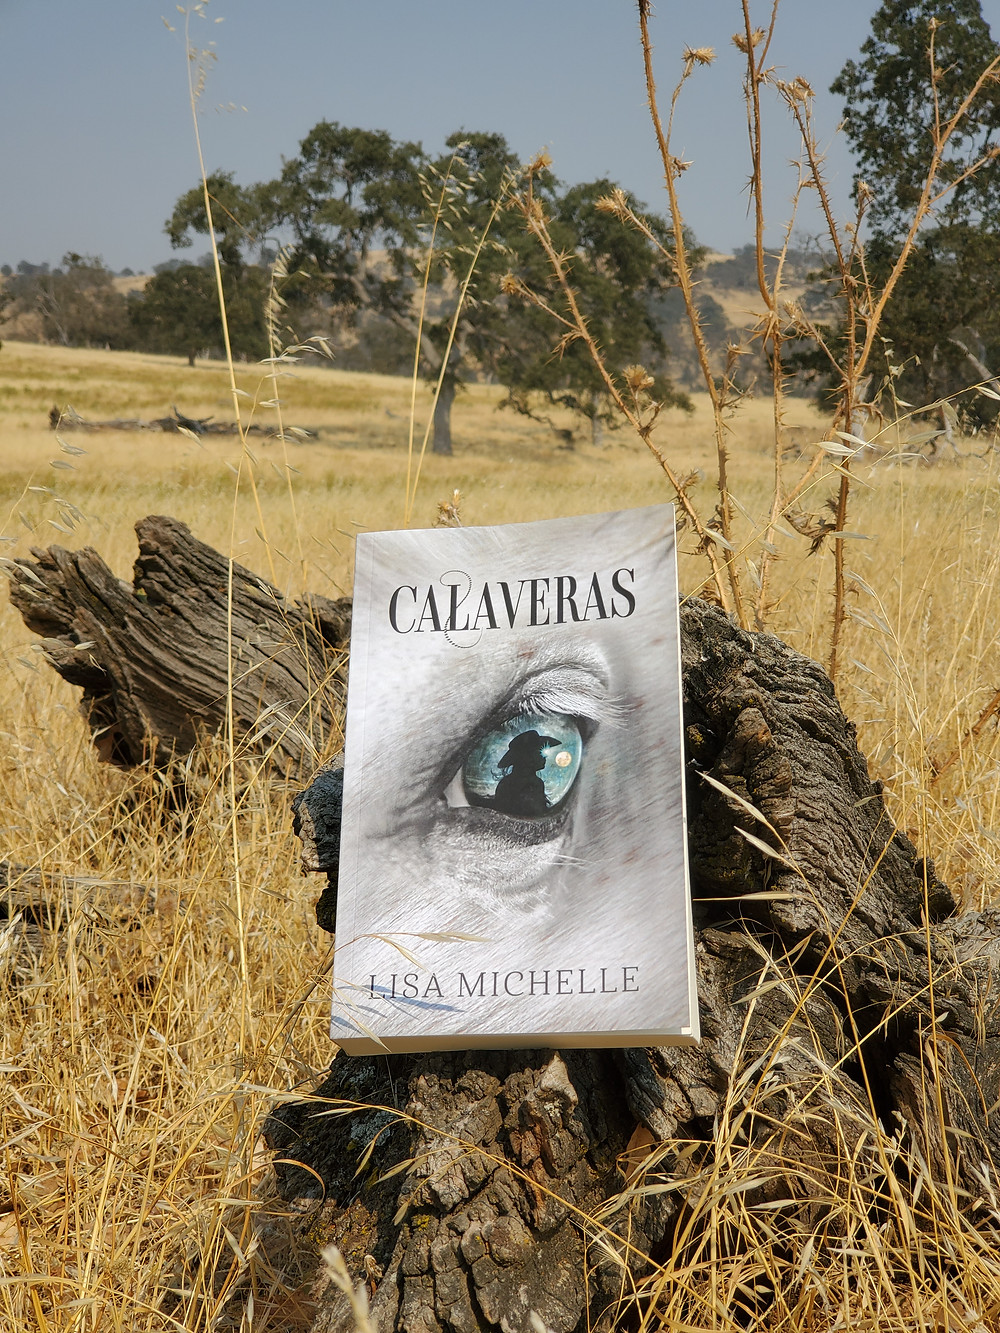 The novel Calaveras by Lisa Michelle on a log surrounded by grass.